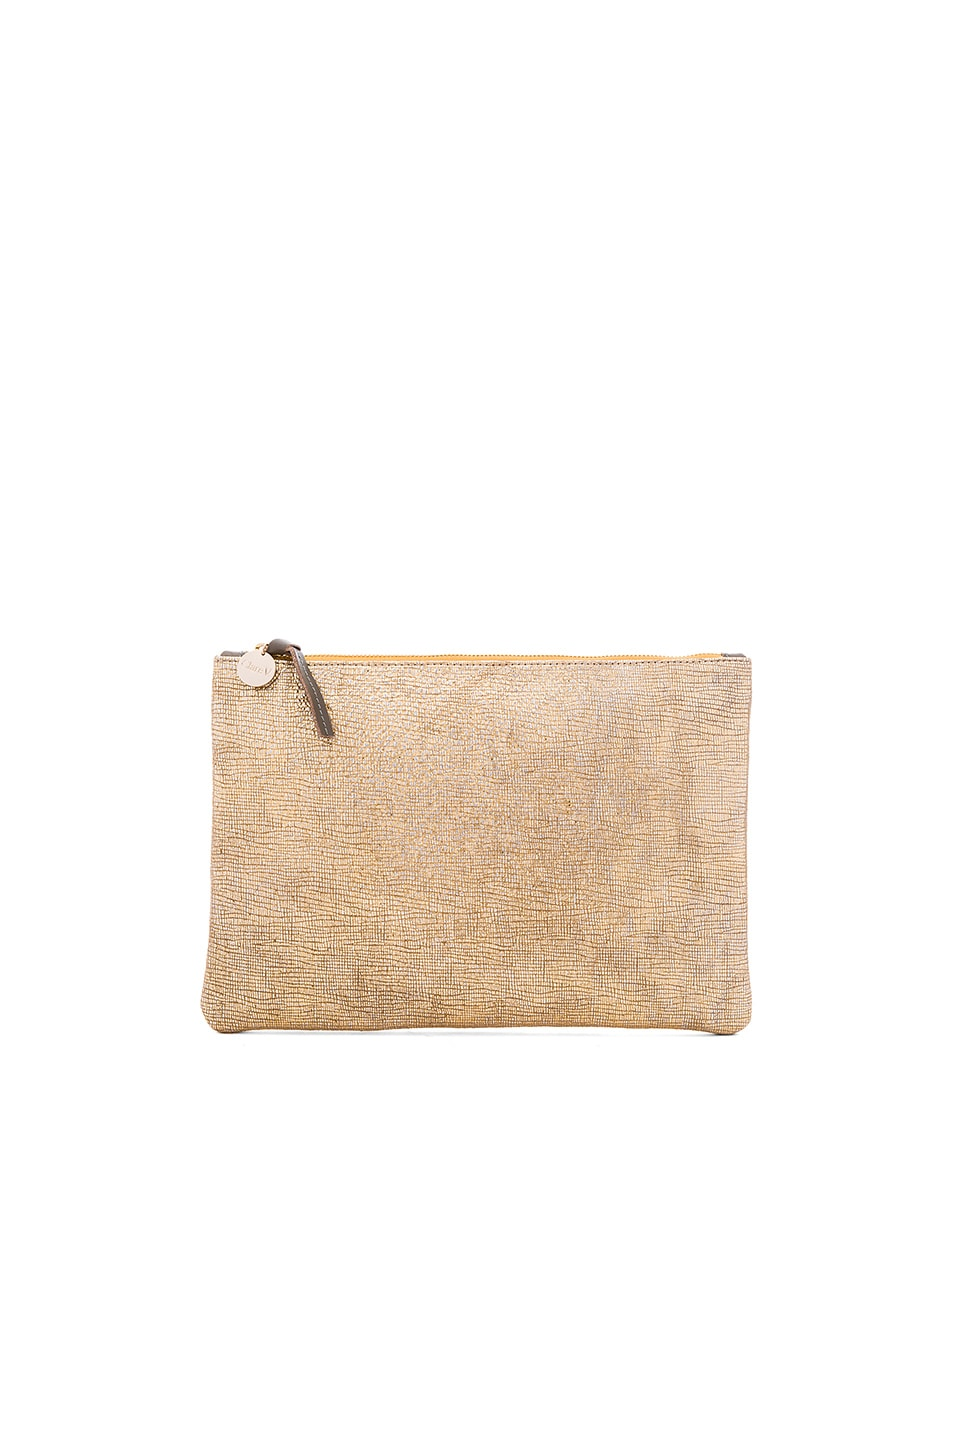 Clare V. Flat Supreme Clutch in Gold Woven